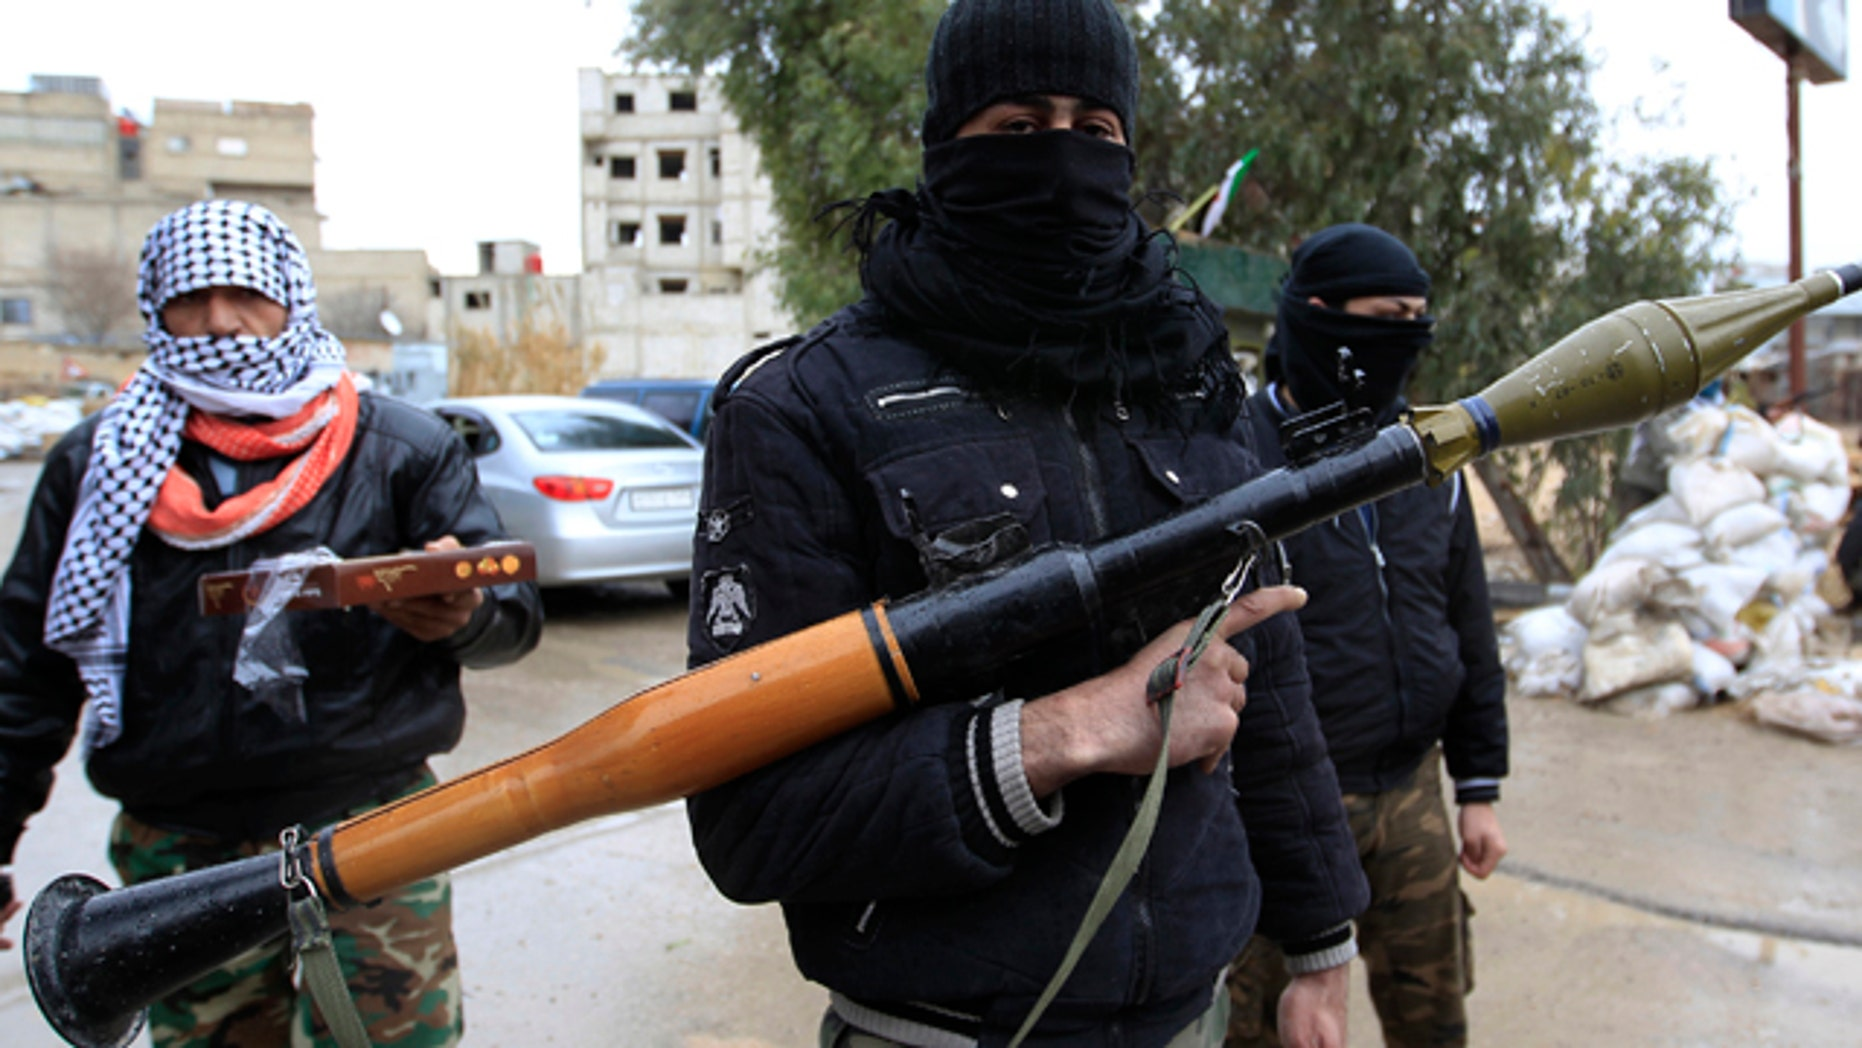 Jan. 27: Syrian soldiers, who have defected to join the Free Syrian Army, look on as one holds up an RPG and another delivers sweets in Saqba, in Damascus suburbs.